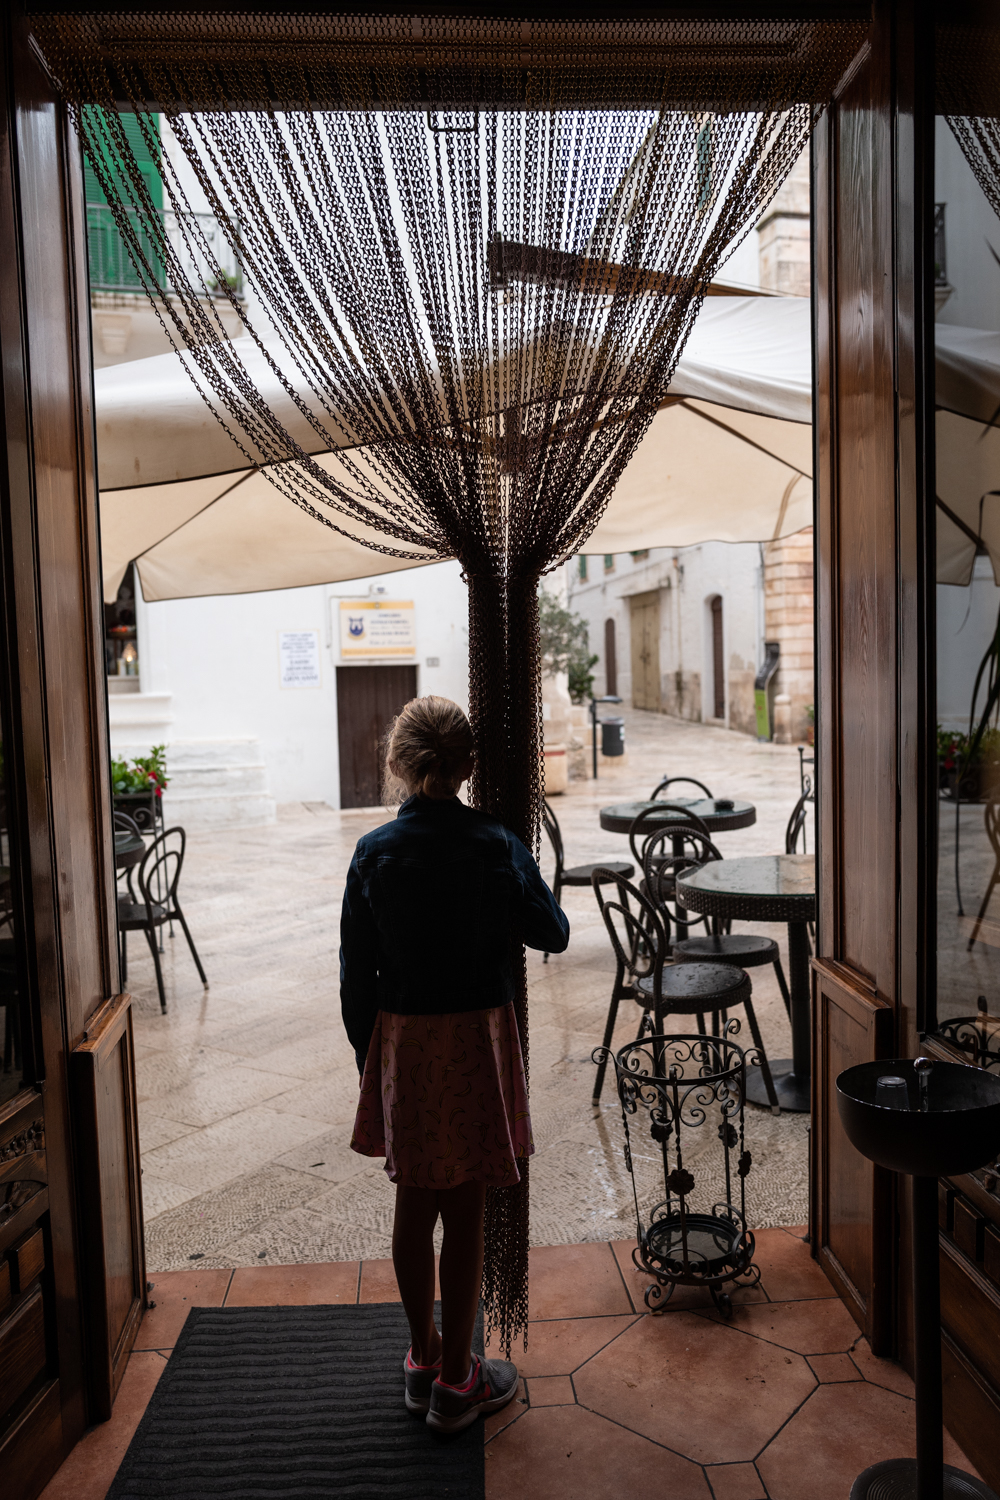 Waiting out the storm in Cisternino